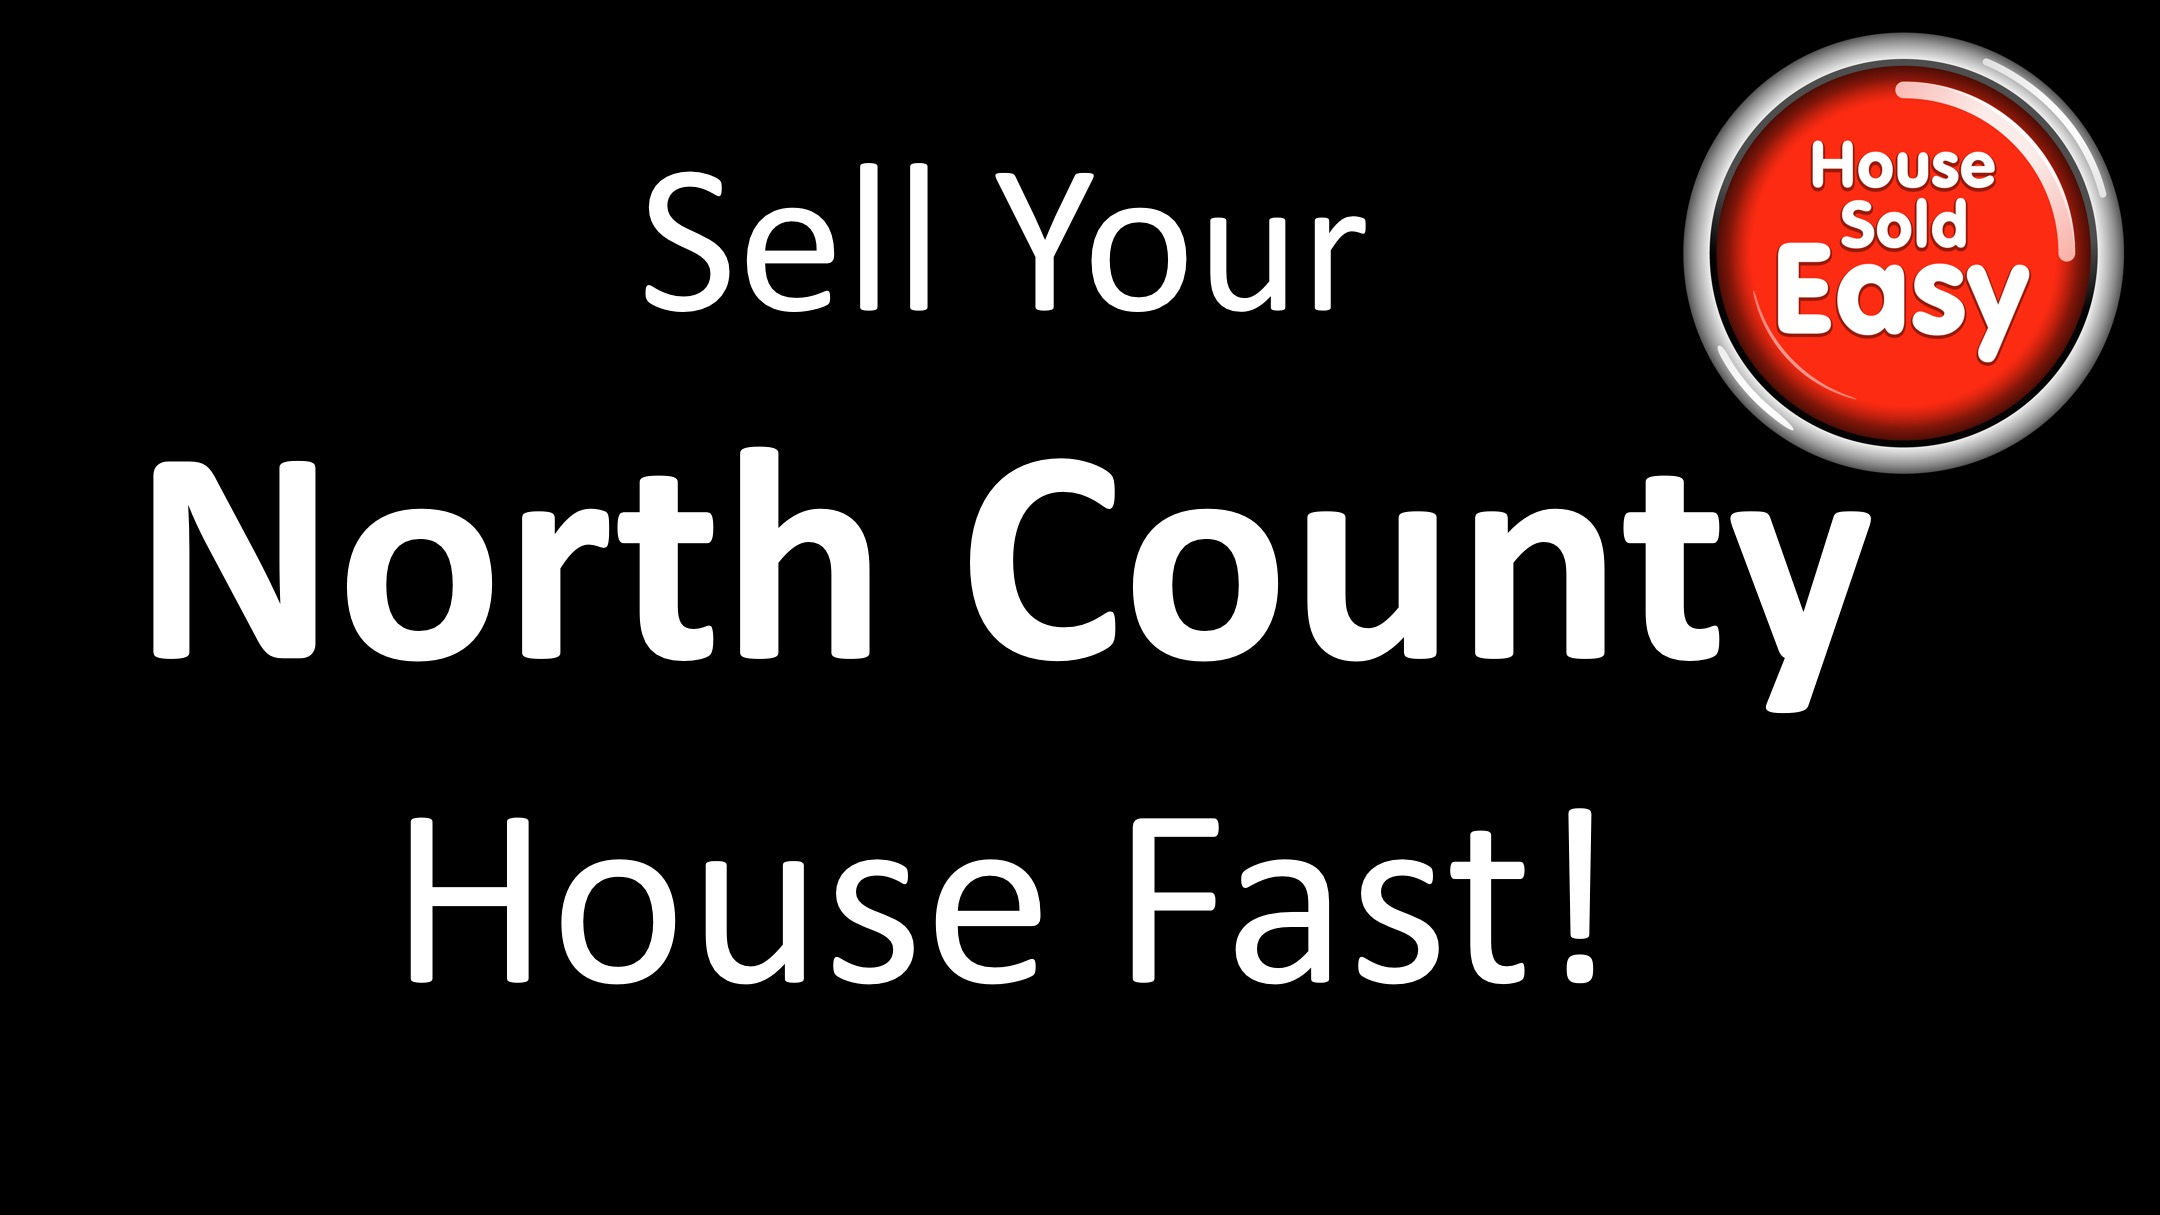 Sell House Fast North County With House Sold Easy  St Louis. Porsche Driving Experience A Call To College. Cornerstone Christian College. Software To Manage Inventory. Wireless Camera Backup System. Credit Counseling Seattle Low Cost Cremations. Technical College In Washington State. Finding The Right Online College. Content Writing For Website Next Gen Updates